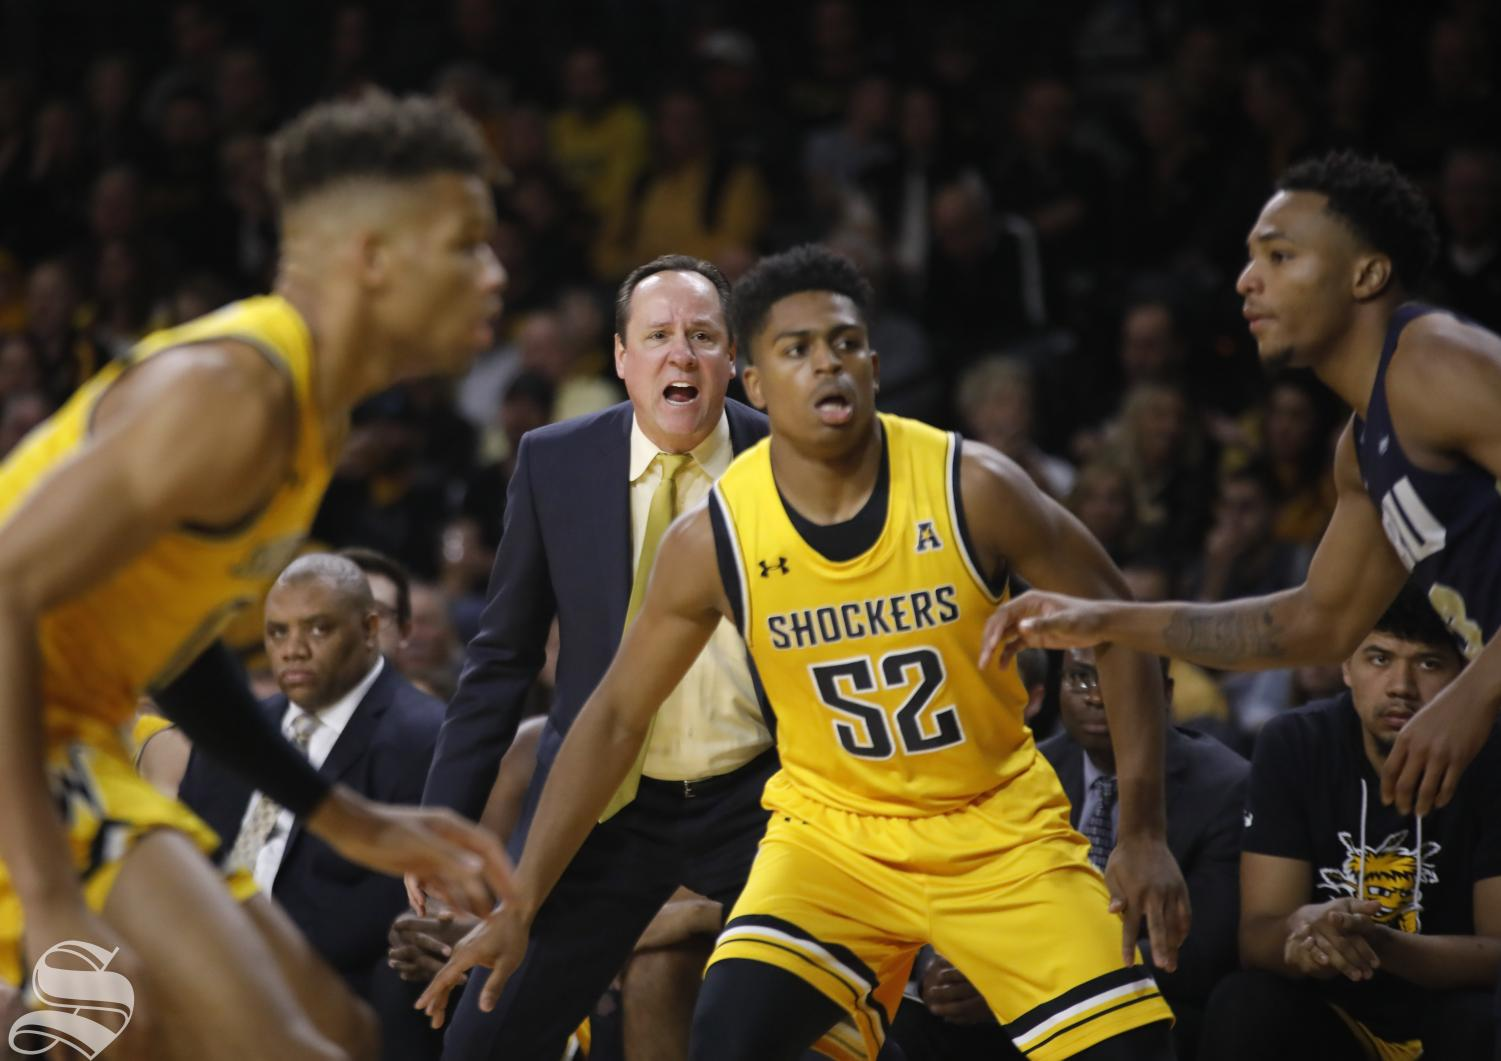 Wichita State head coach Gregg Marshall calls a play during second half of the game against Oral Roberts at Charles Koch Arena on Saturday, Nov. 23, 2019.